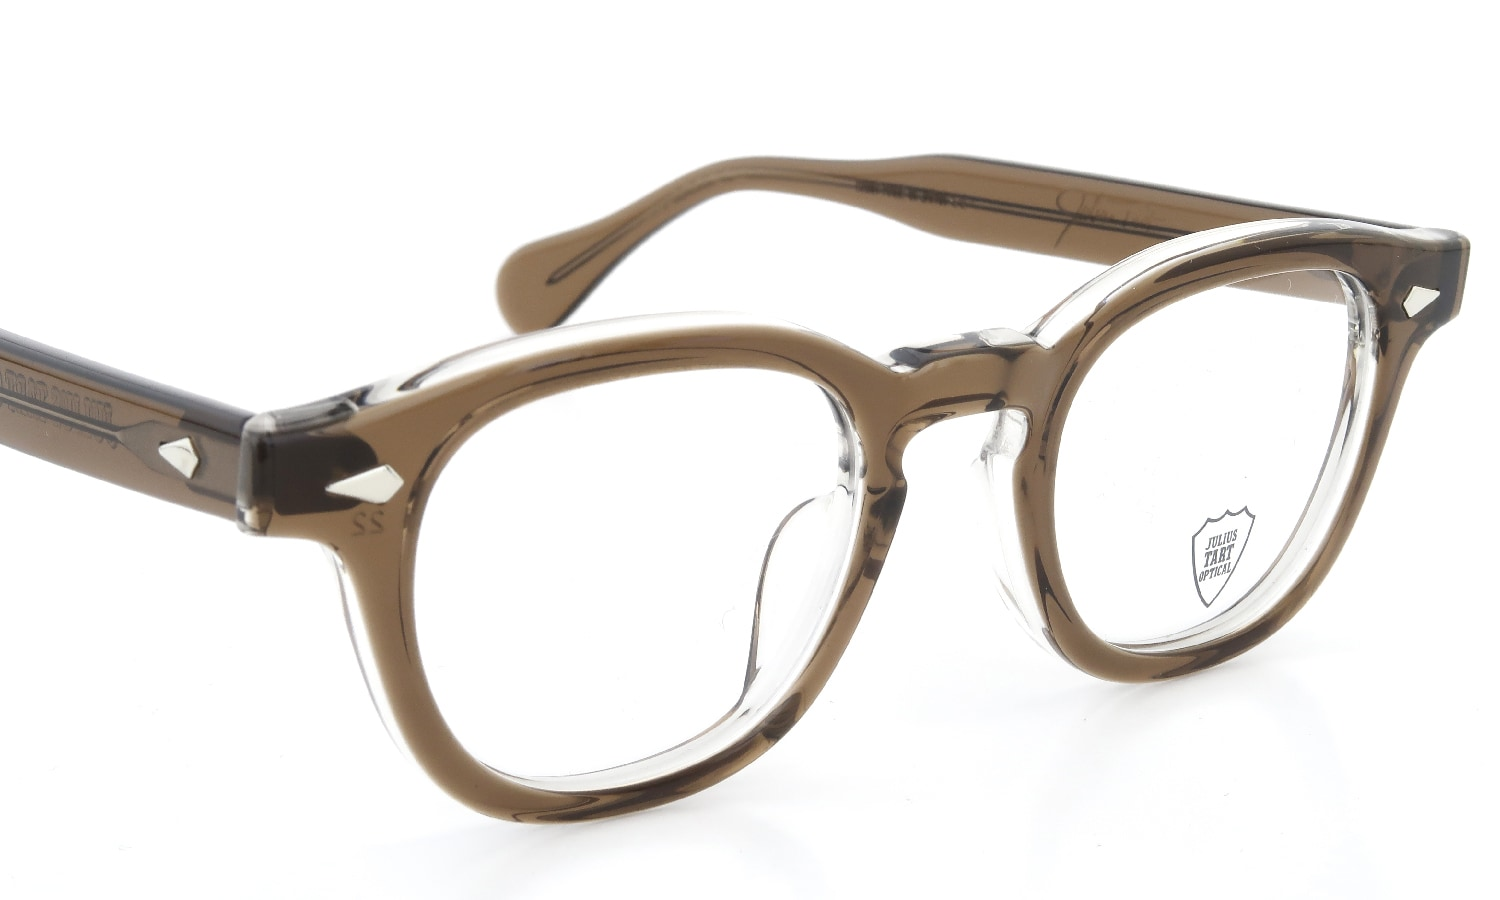 JULIUS TART OPTICAL AR-44 PL-001K